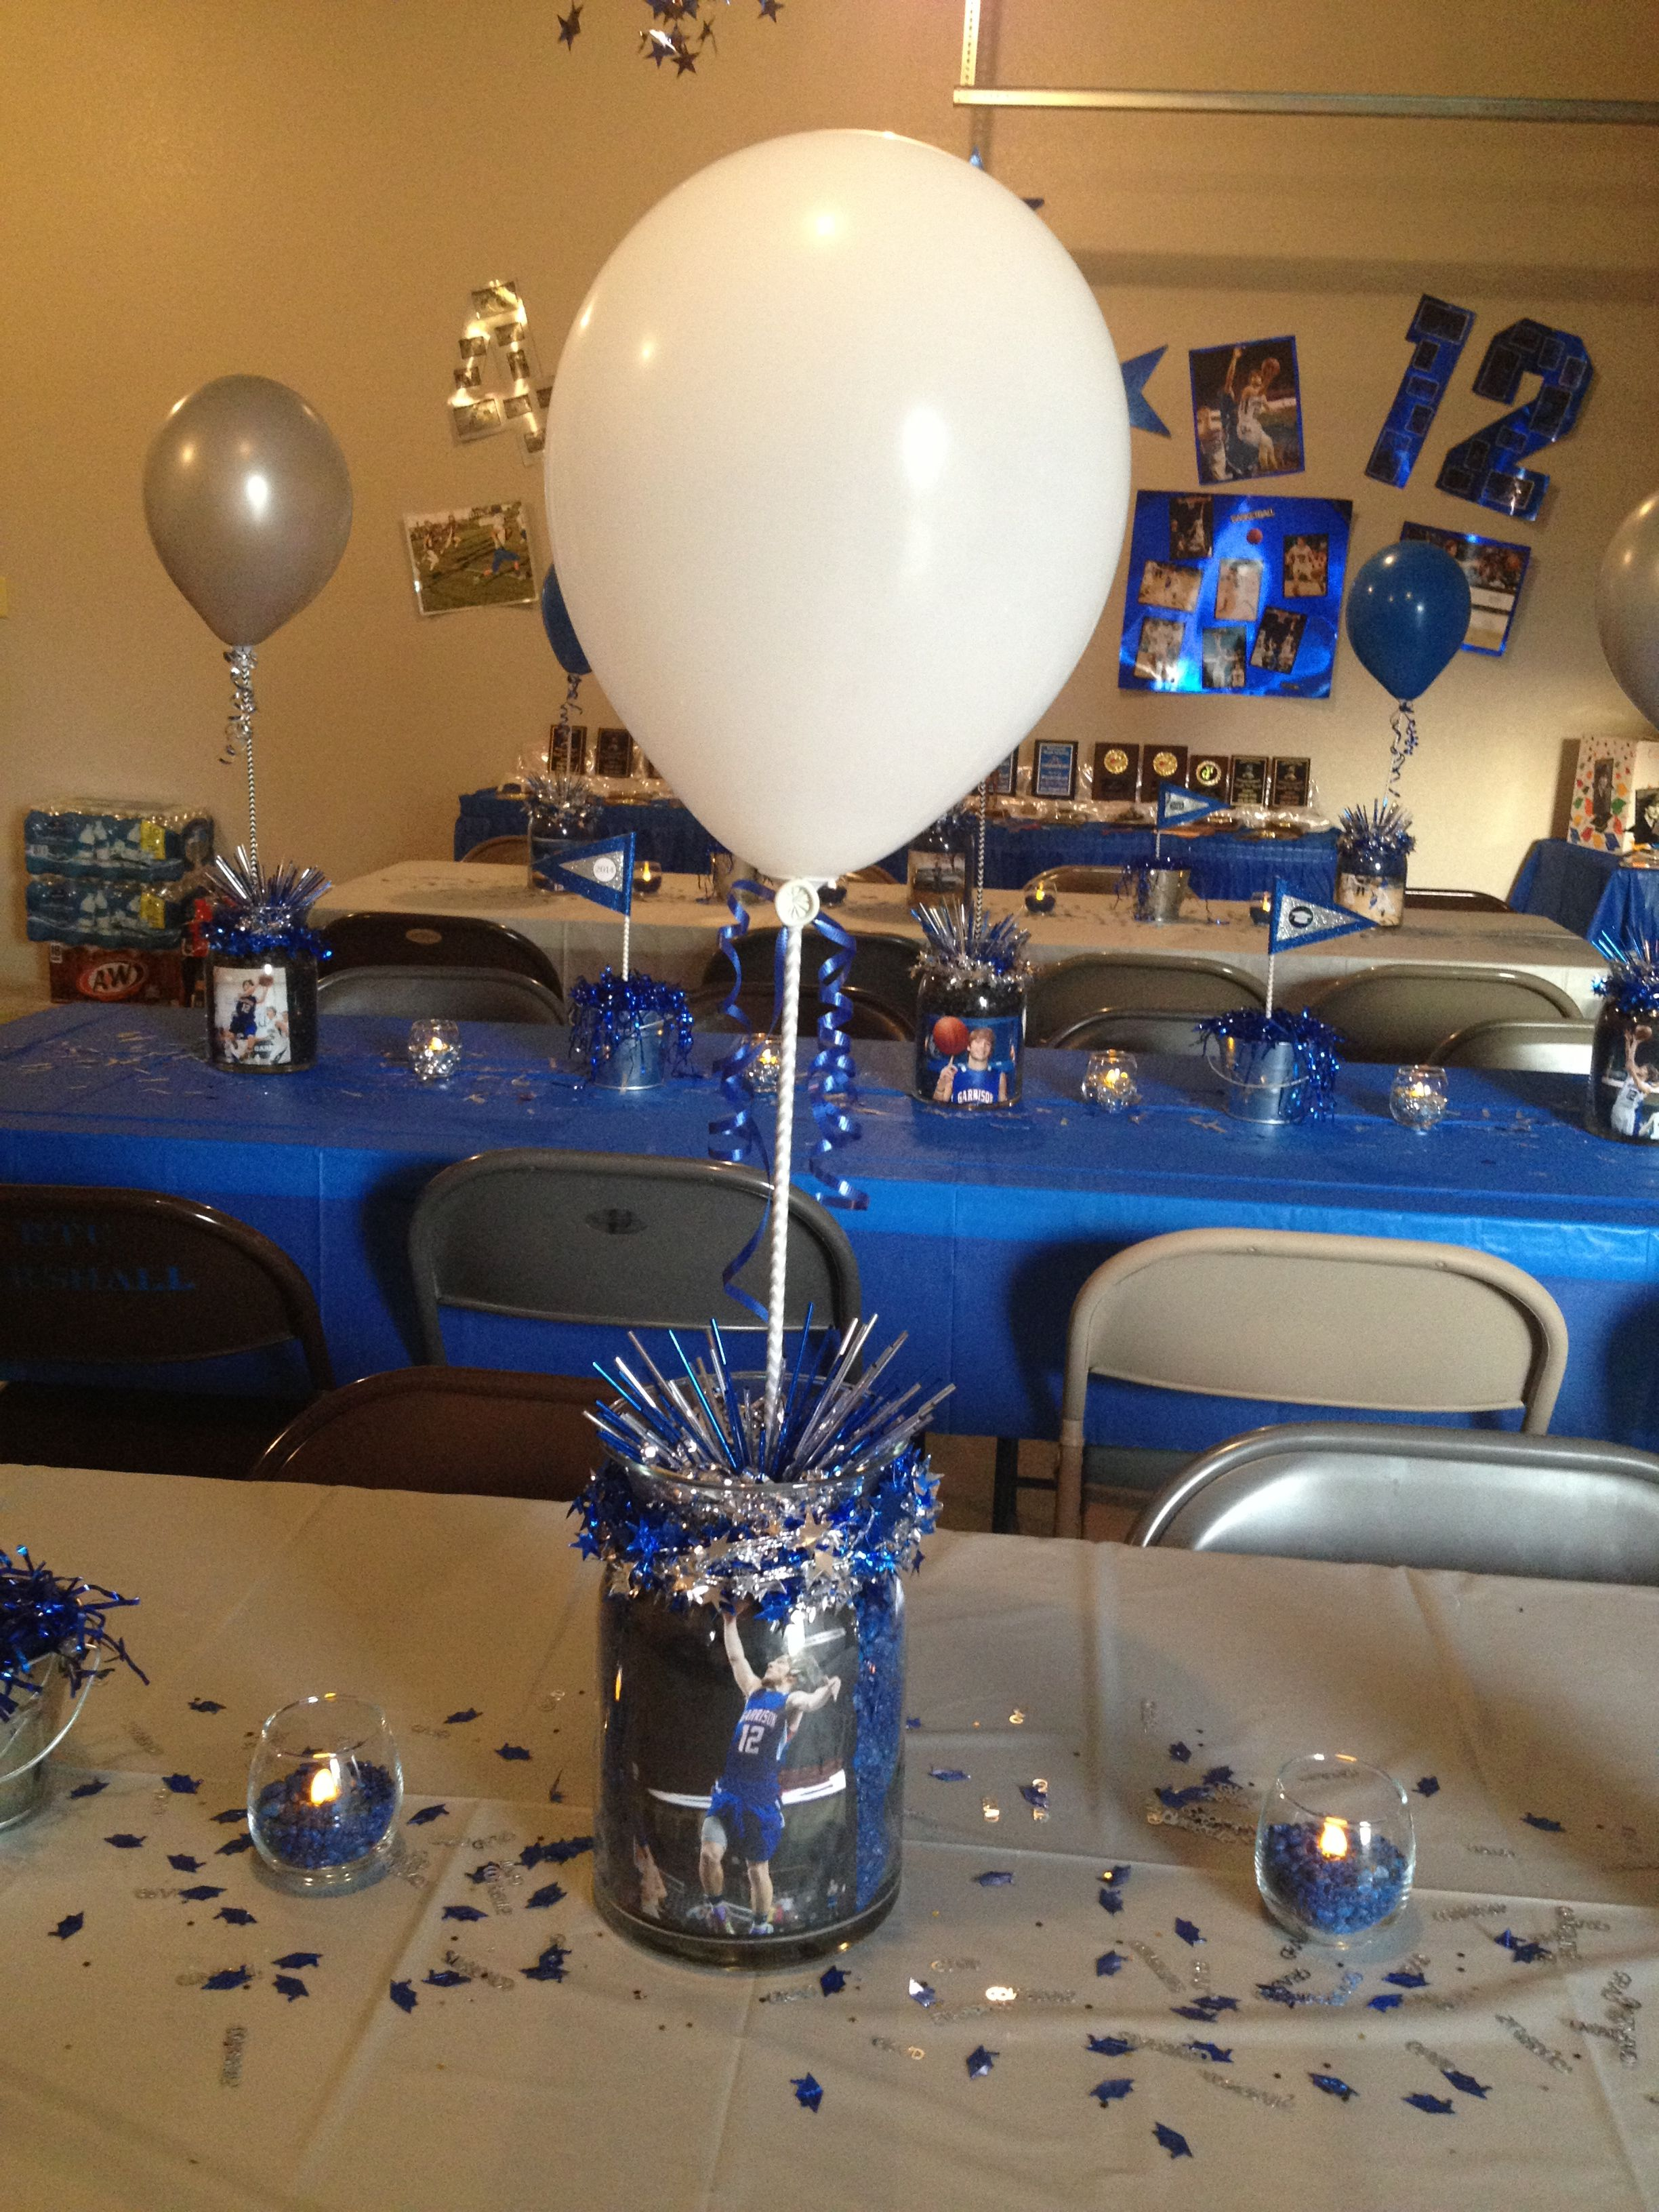 Graduation party centerpiece idea glass decor personal